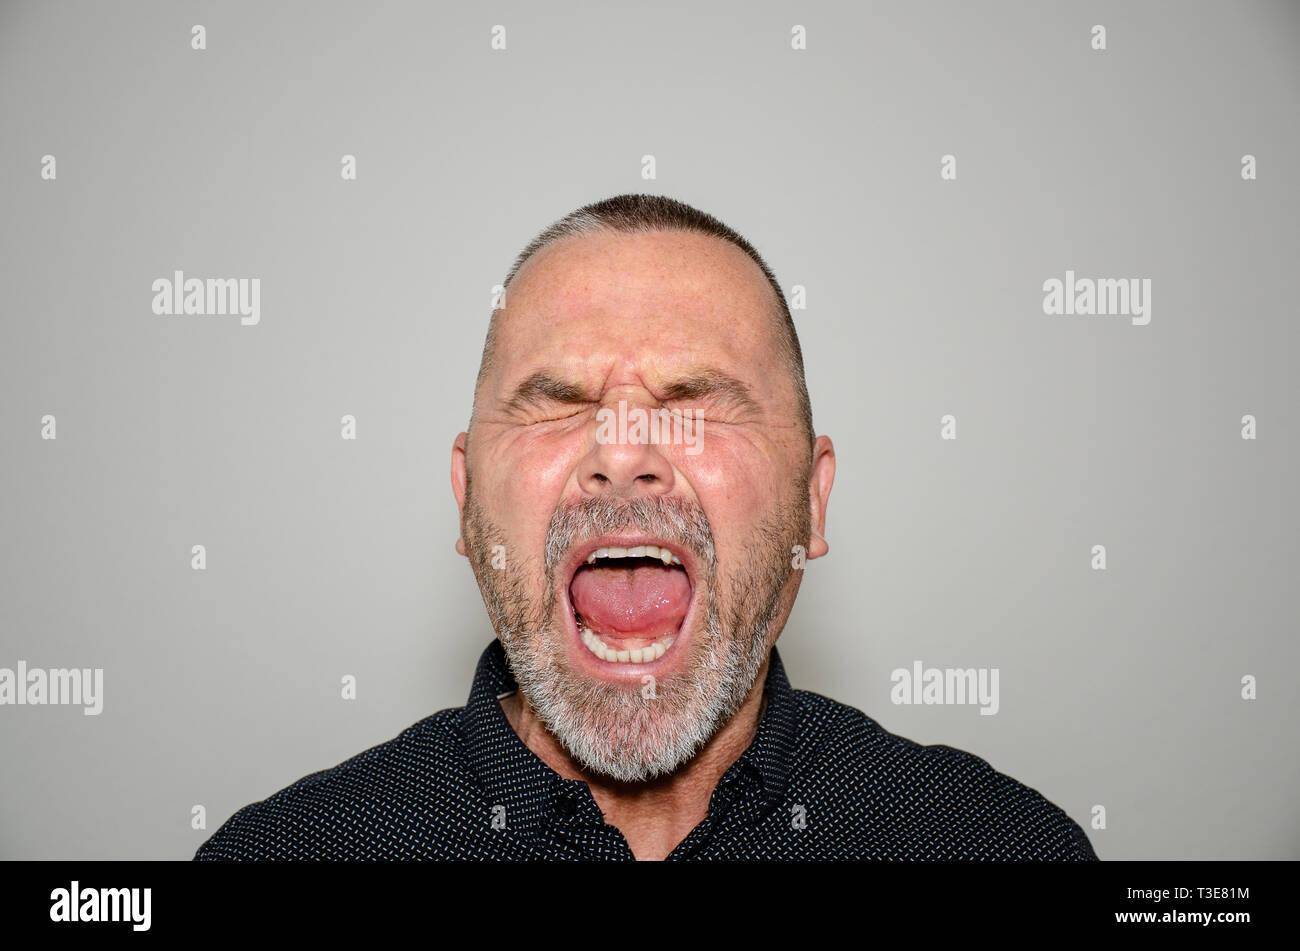 Frustrated angry middle-aged man yelling out loud to voice his annoyance with closed eyes and wide open mouth over a grey studio background - Stock Image